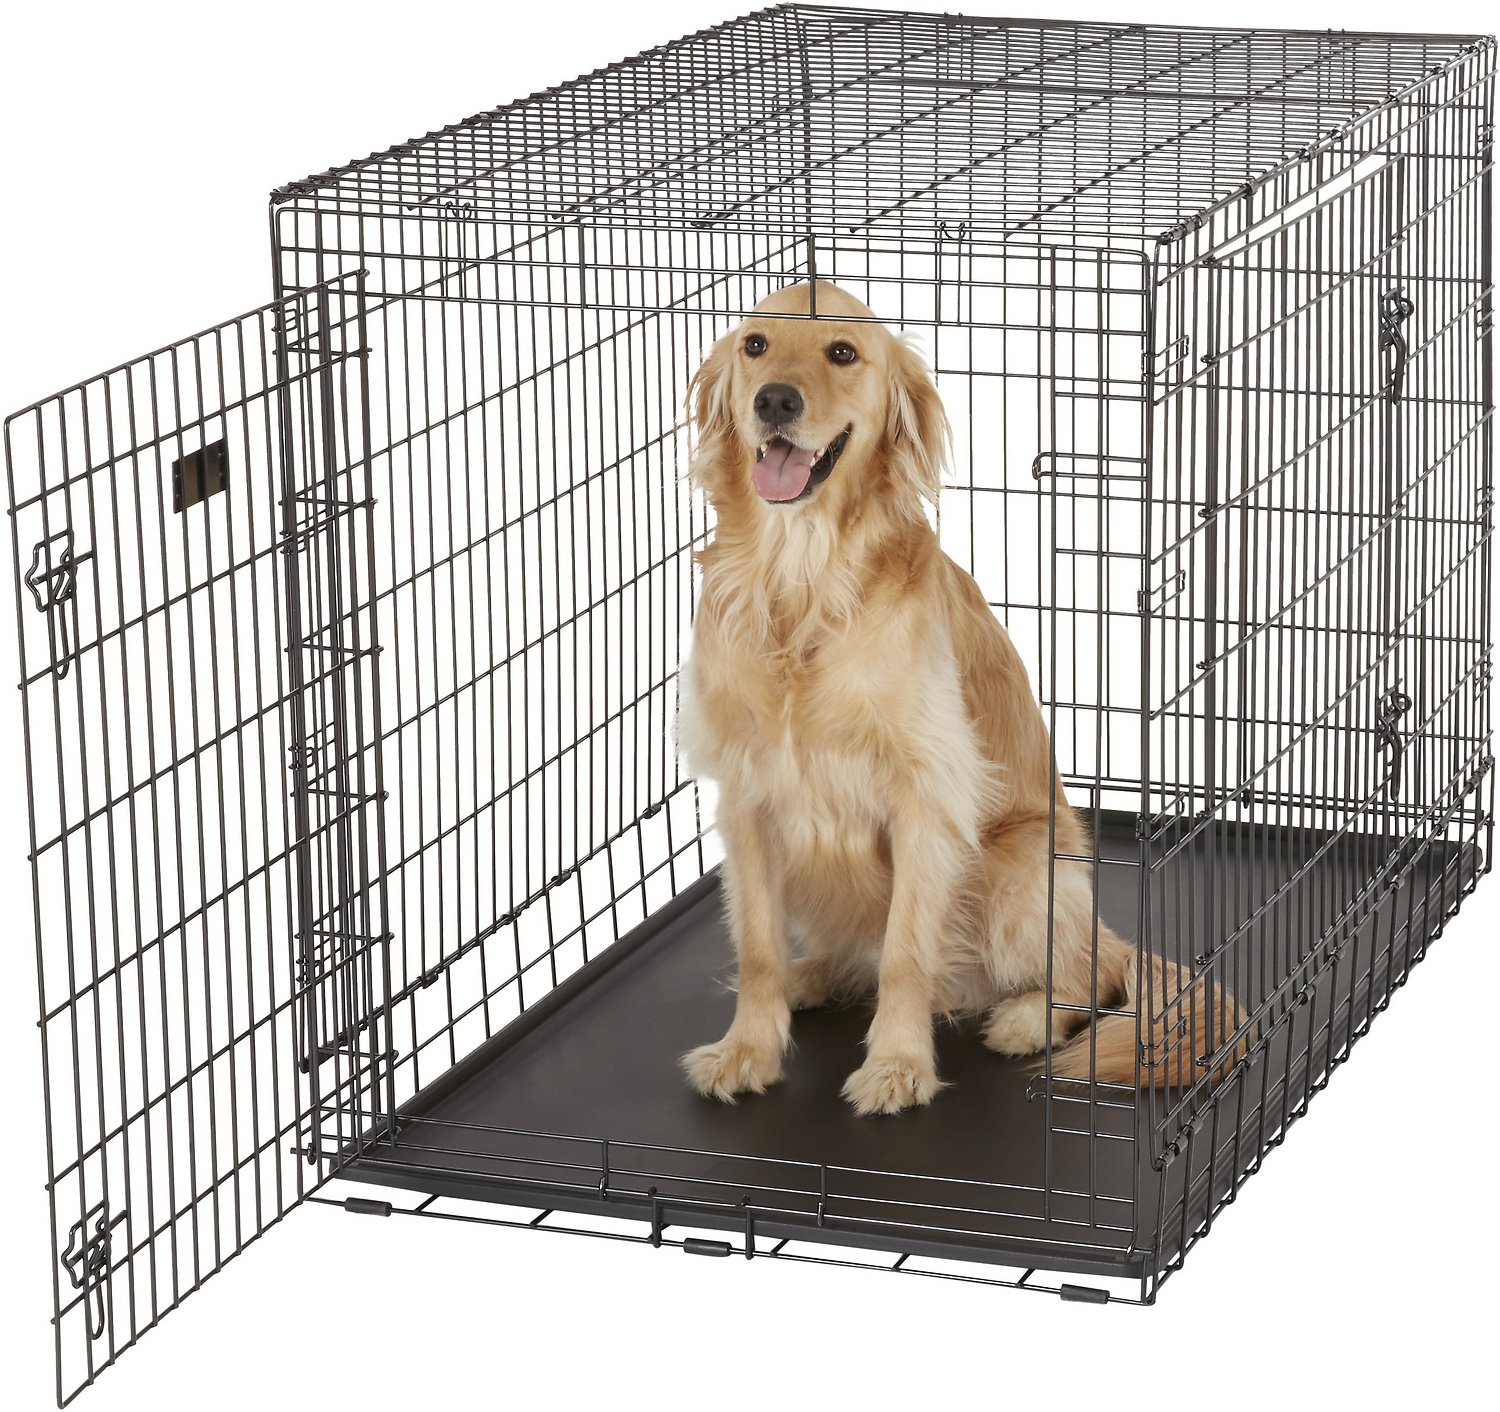 Midwest ultima pro double door dog crate 48 inch for Double door with dog door